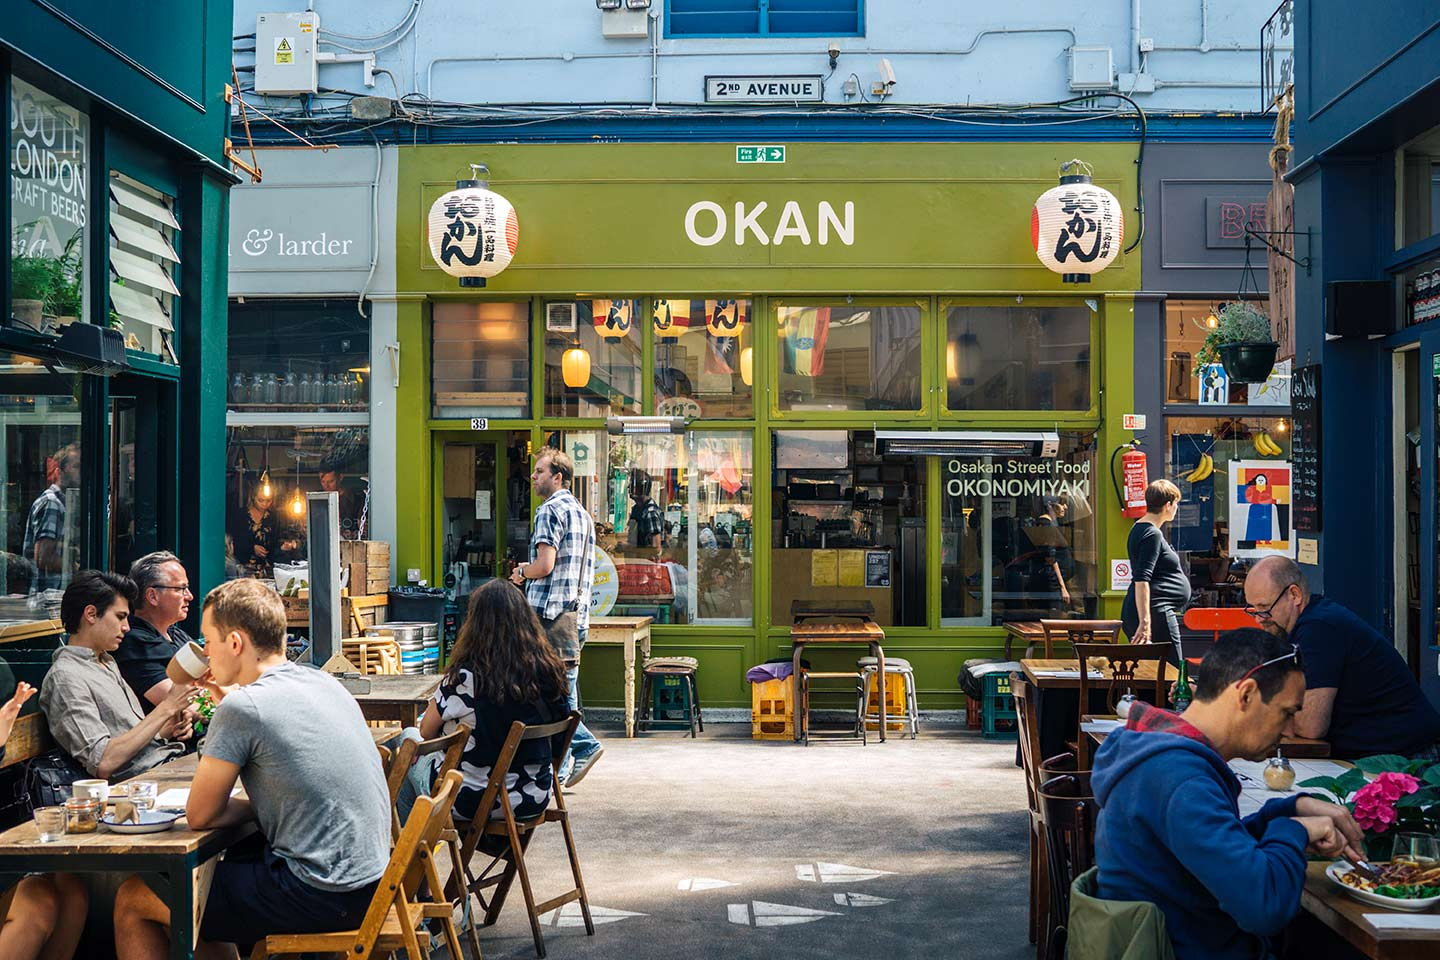 Okan Brixton Village - Top things to do in Brixton, South London